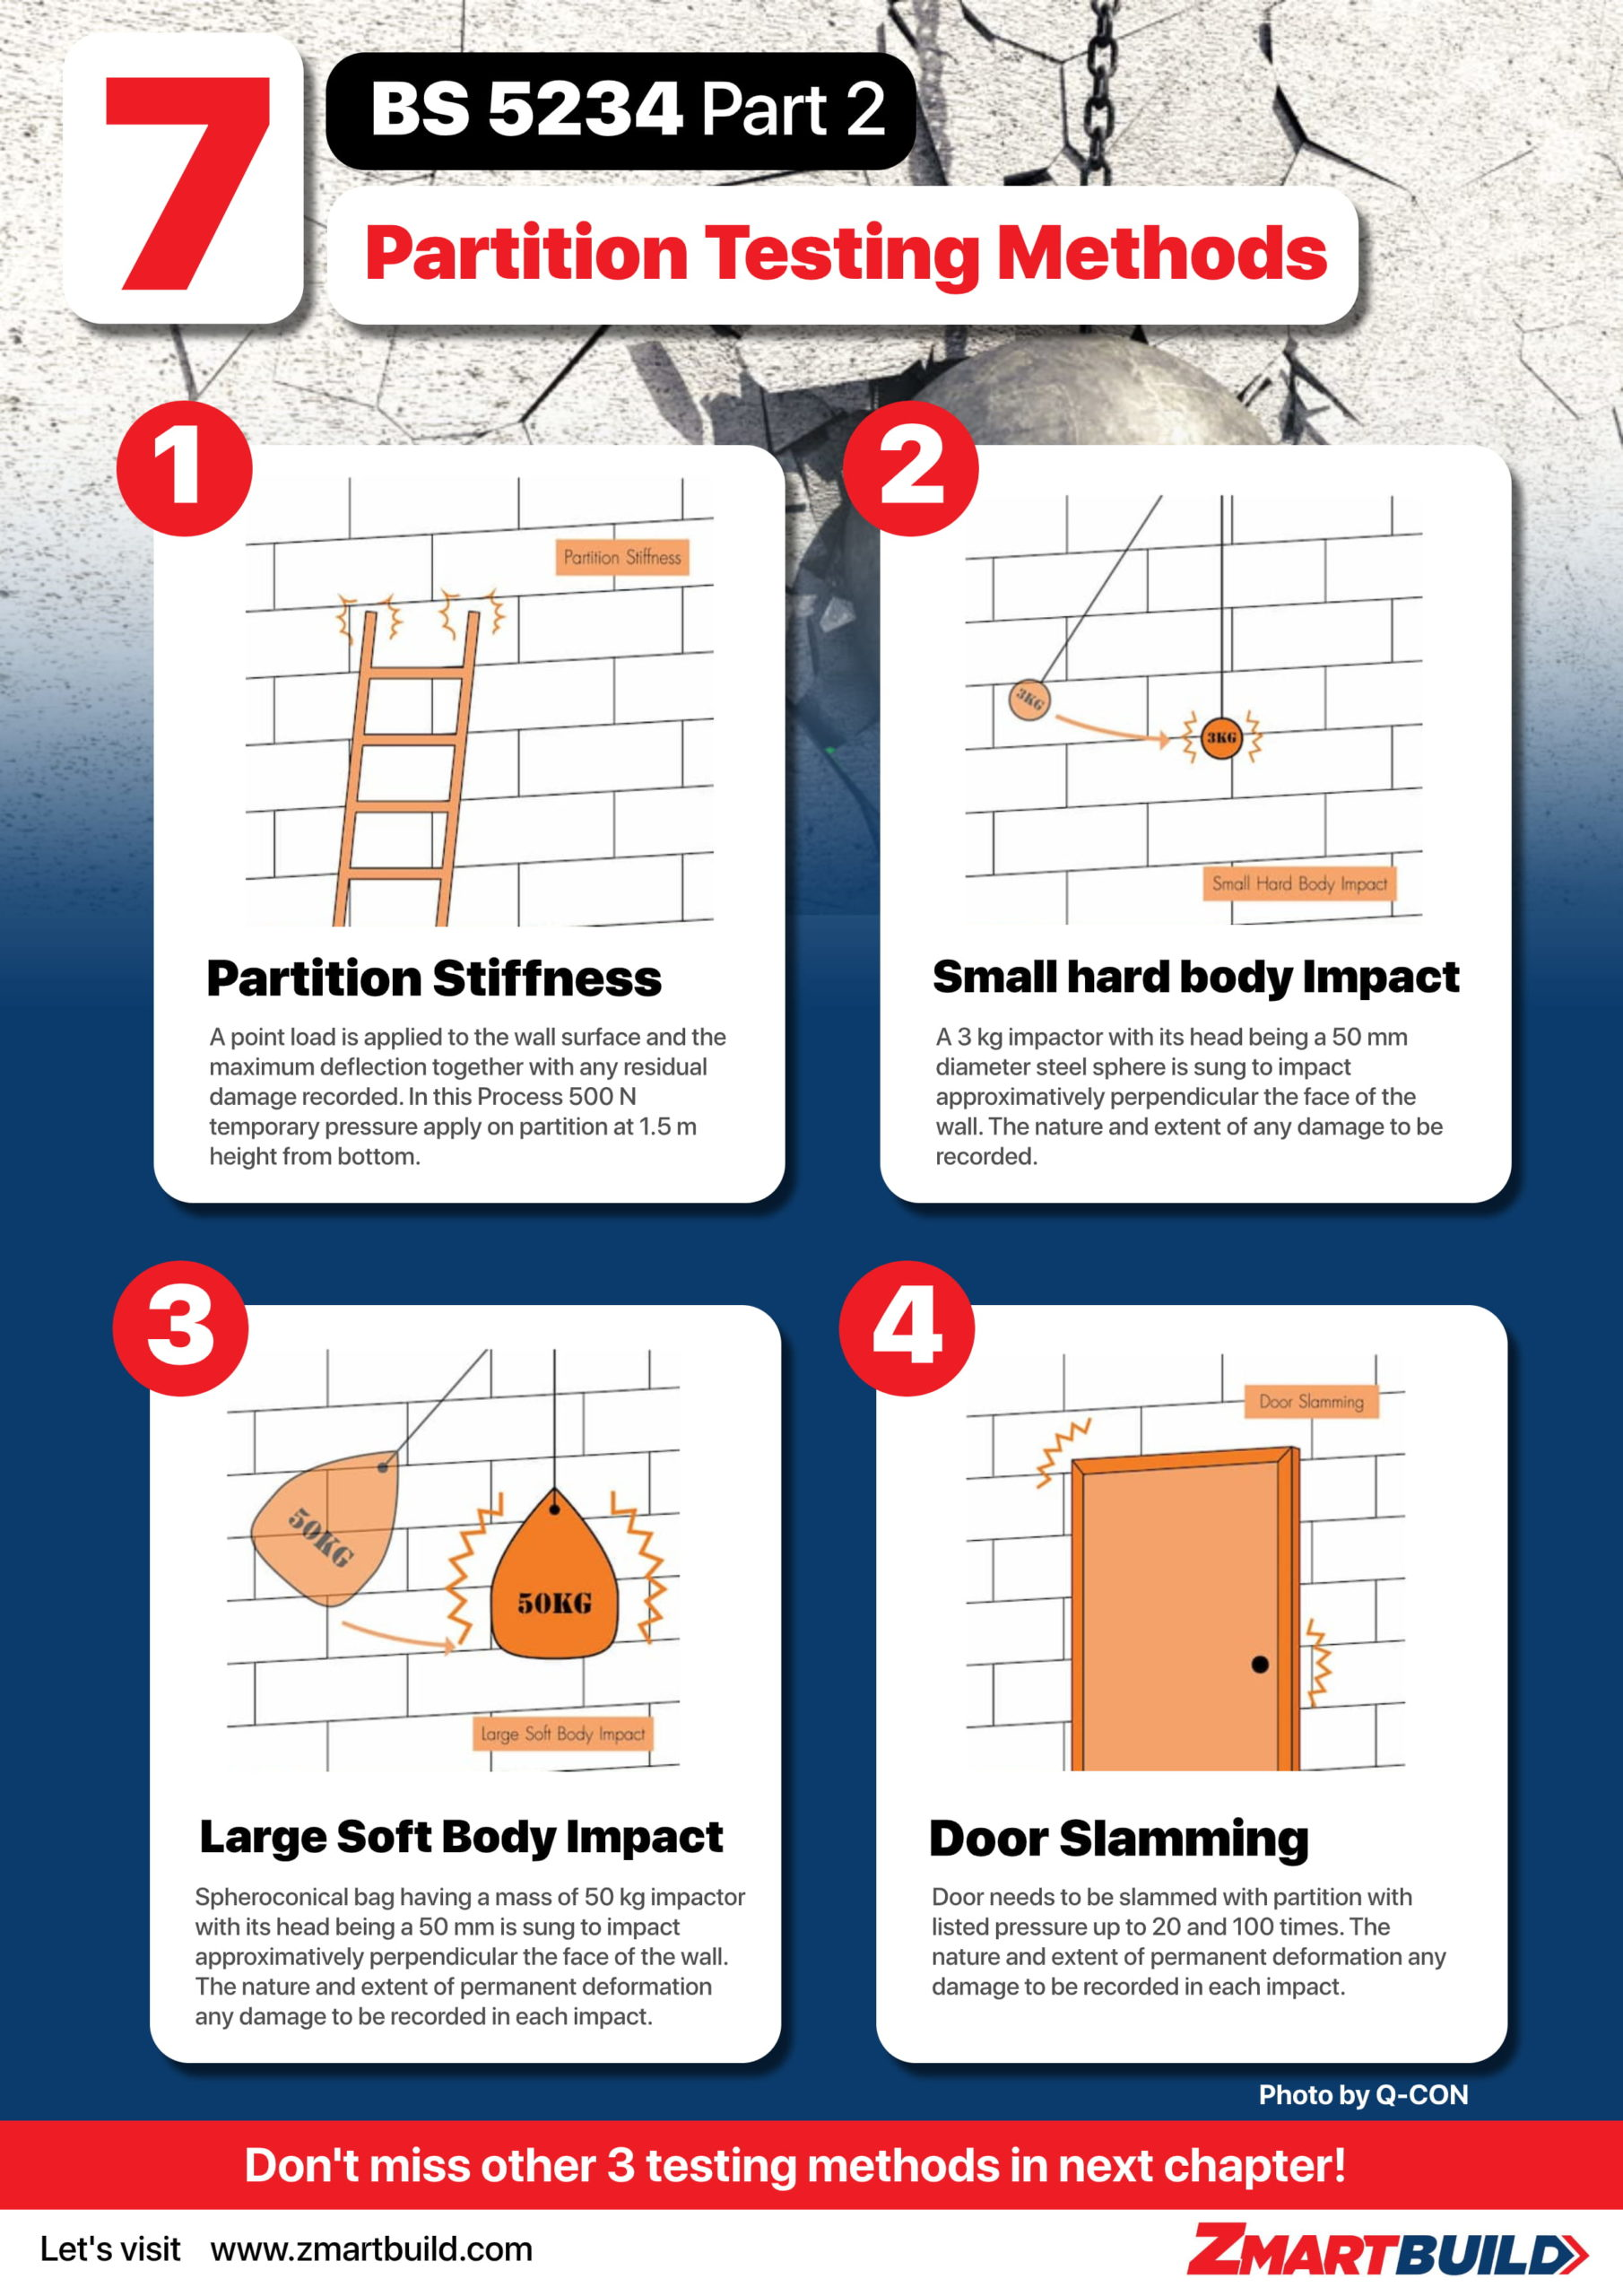 7 Wall PartitionTesting Method Part 1 - Infographic